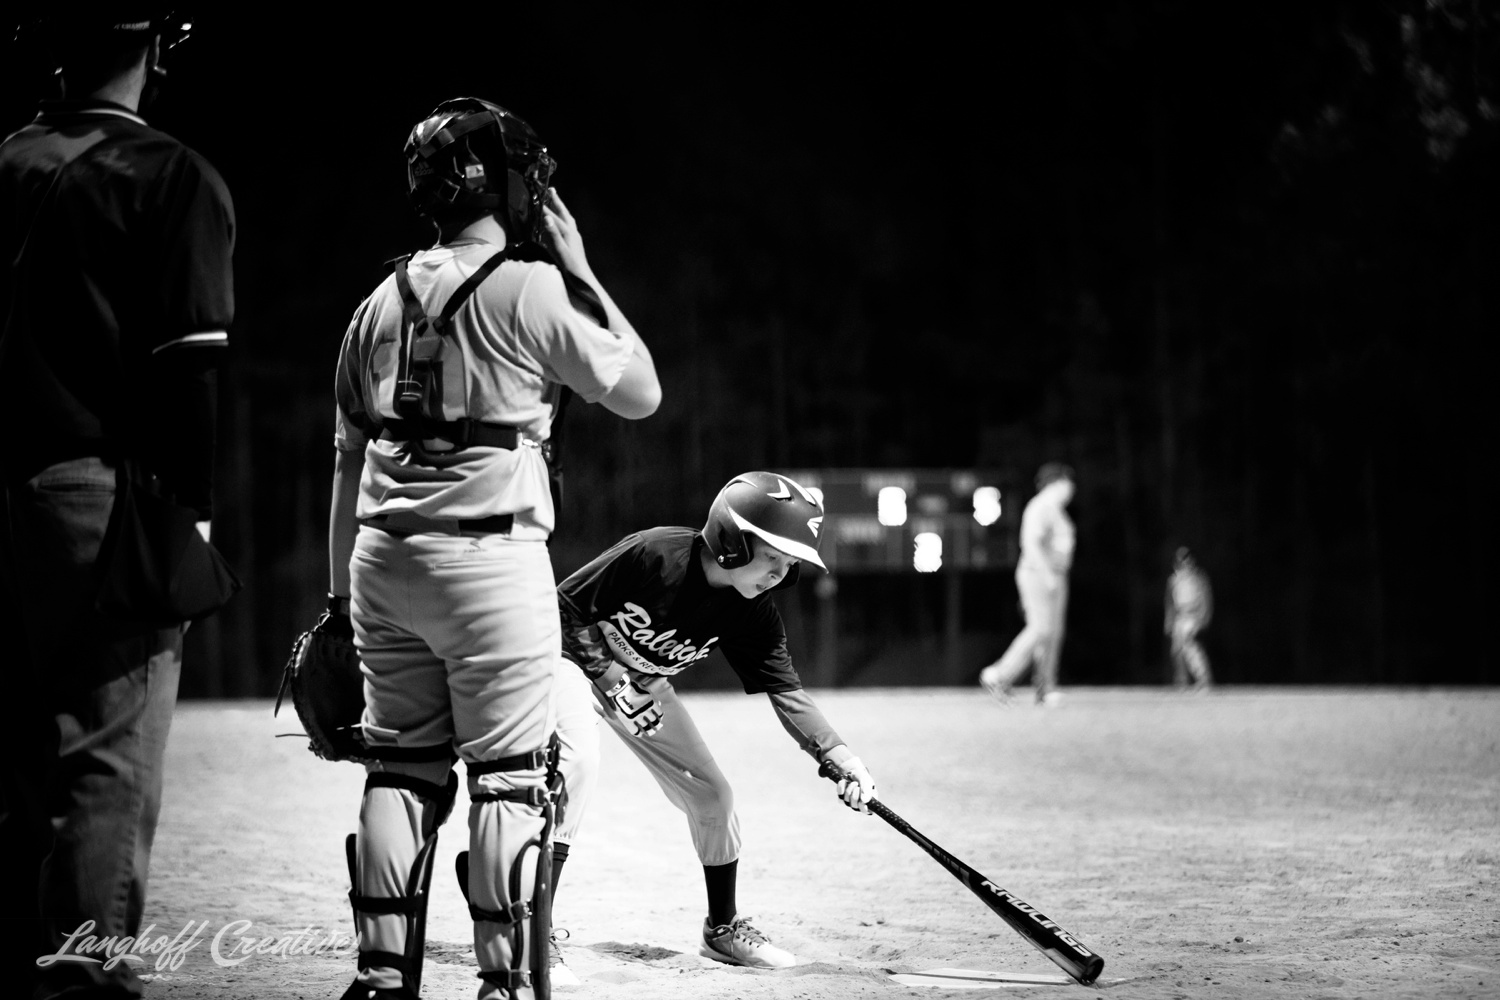 DocumentaryFamilySession-DocumentaryFamilyPhotography-RDUfamily-Baseball-RealLifeSession-LanghoffCreative-George-2018-19-image.jpg